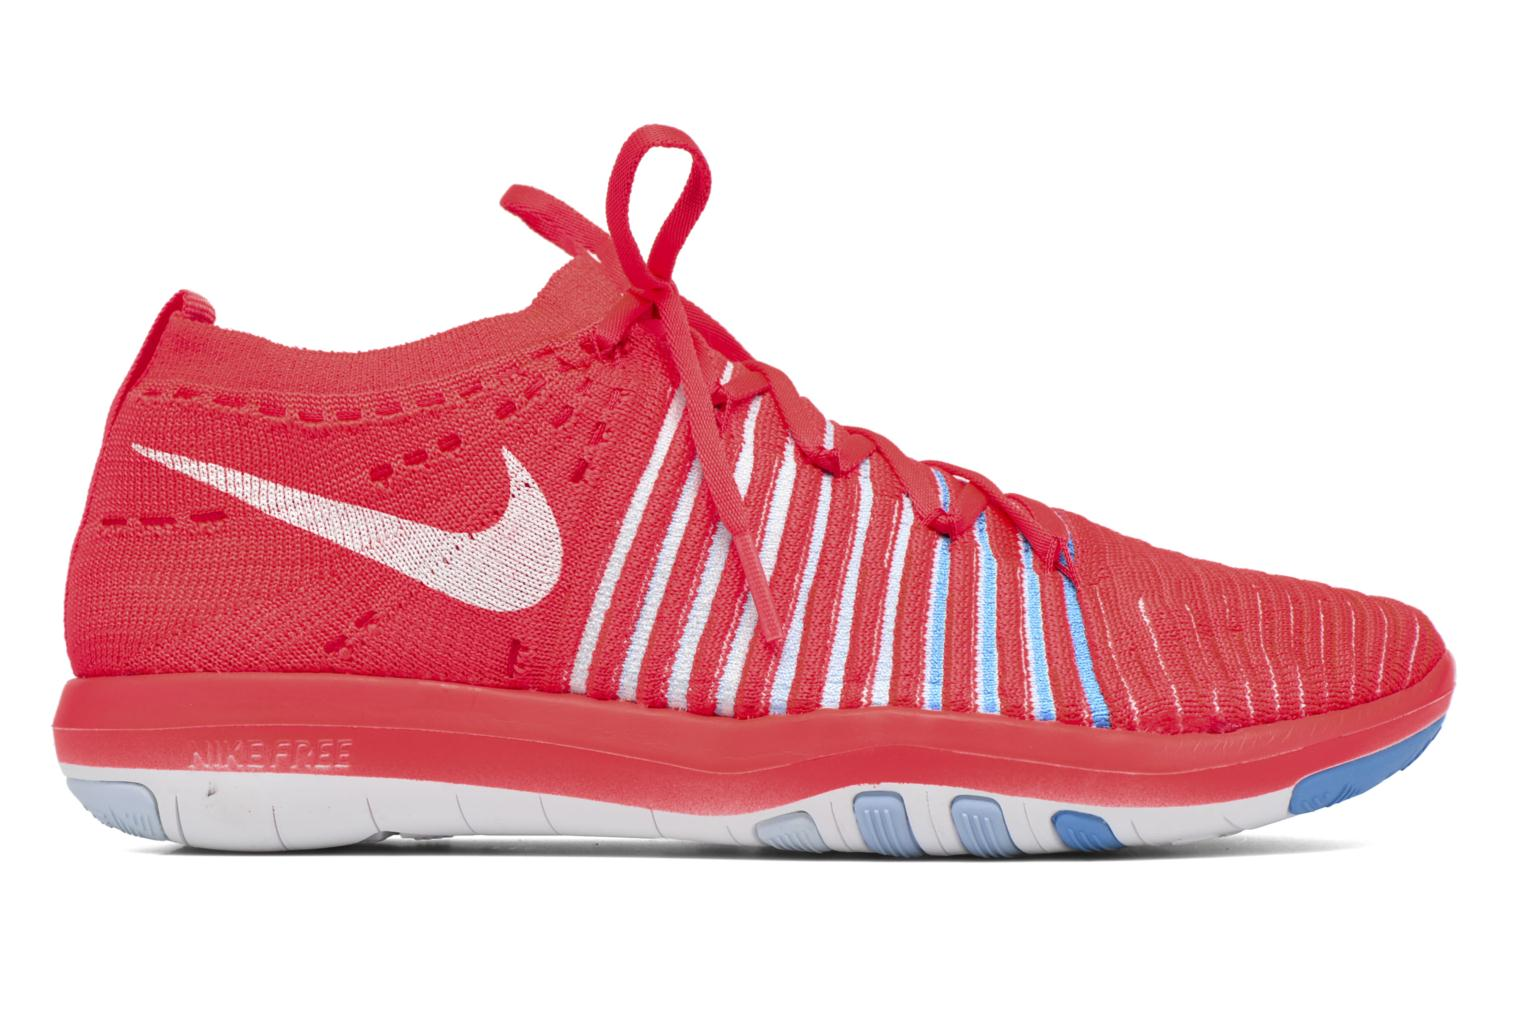 Wm Nike Free Transform Flyknit Brght Crmsn/White-Bl Tnt-Blcp